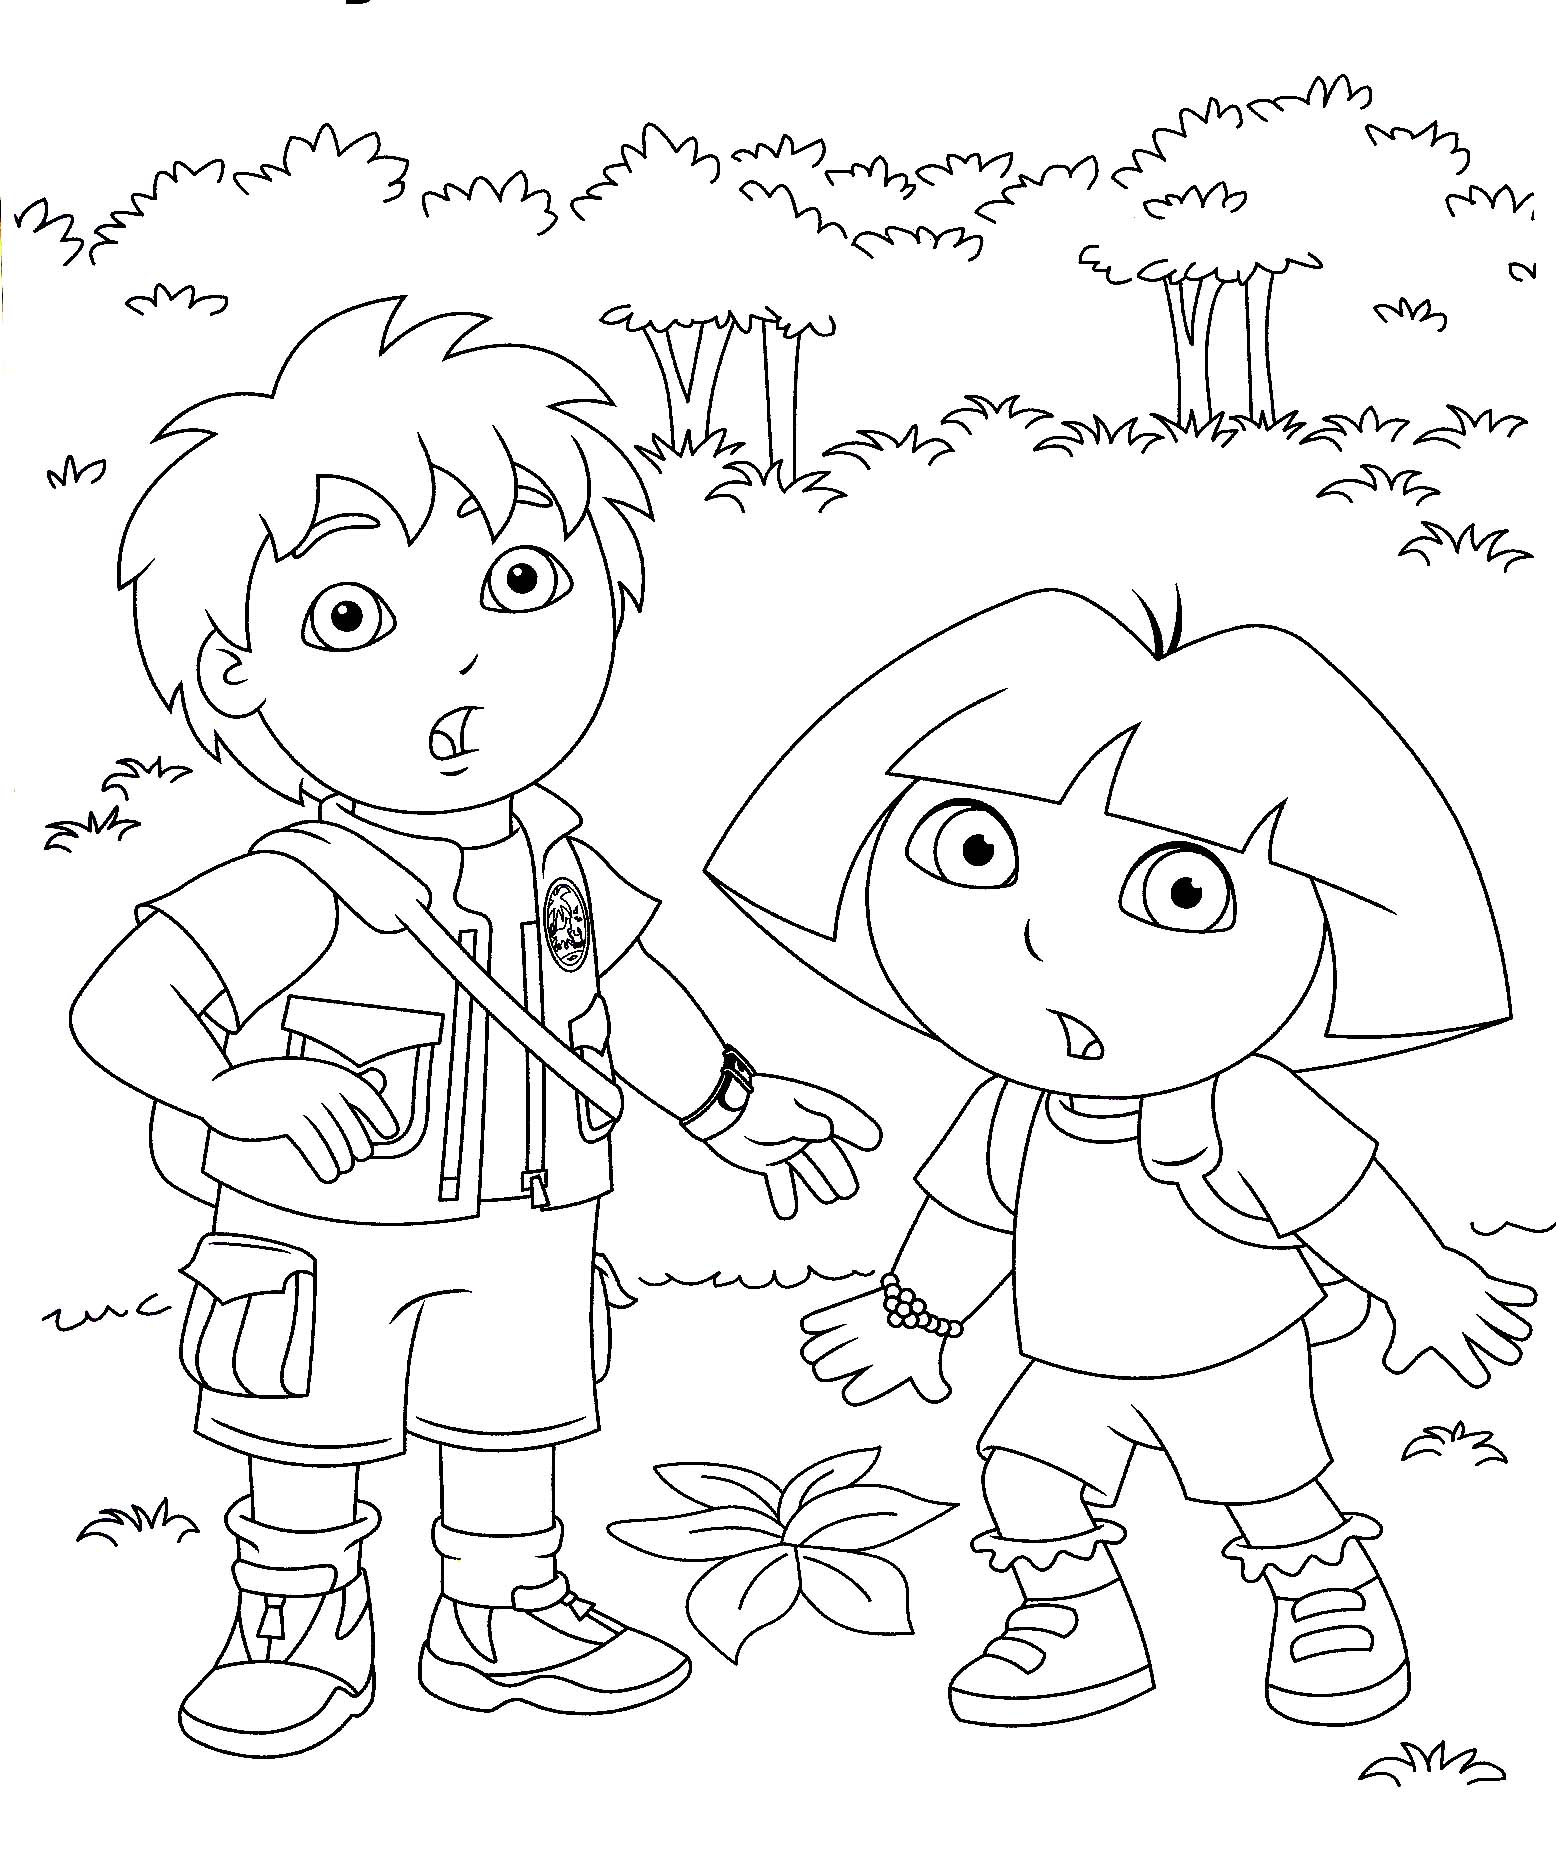 san diego coloring pages san diego padres coloring pages coloring pages pages diego coloring san